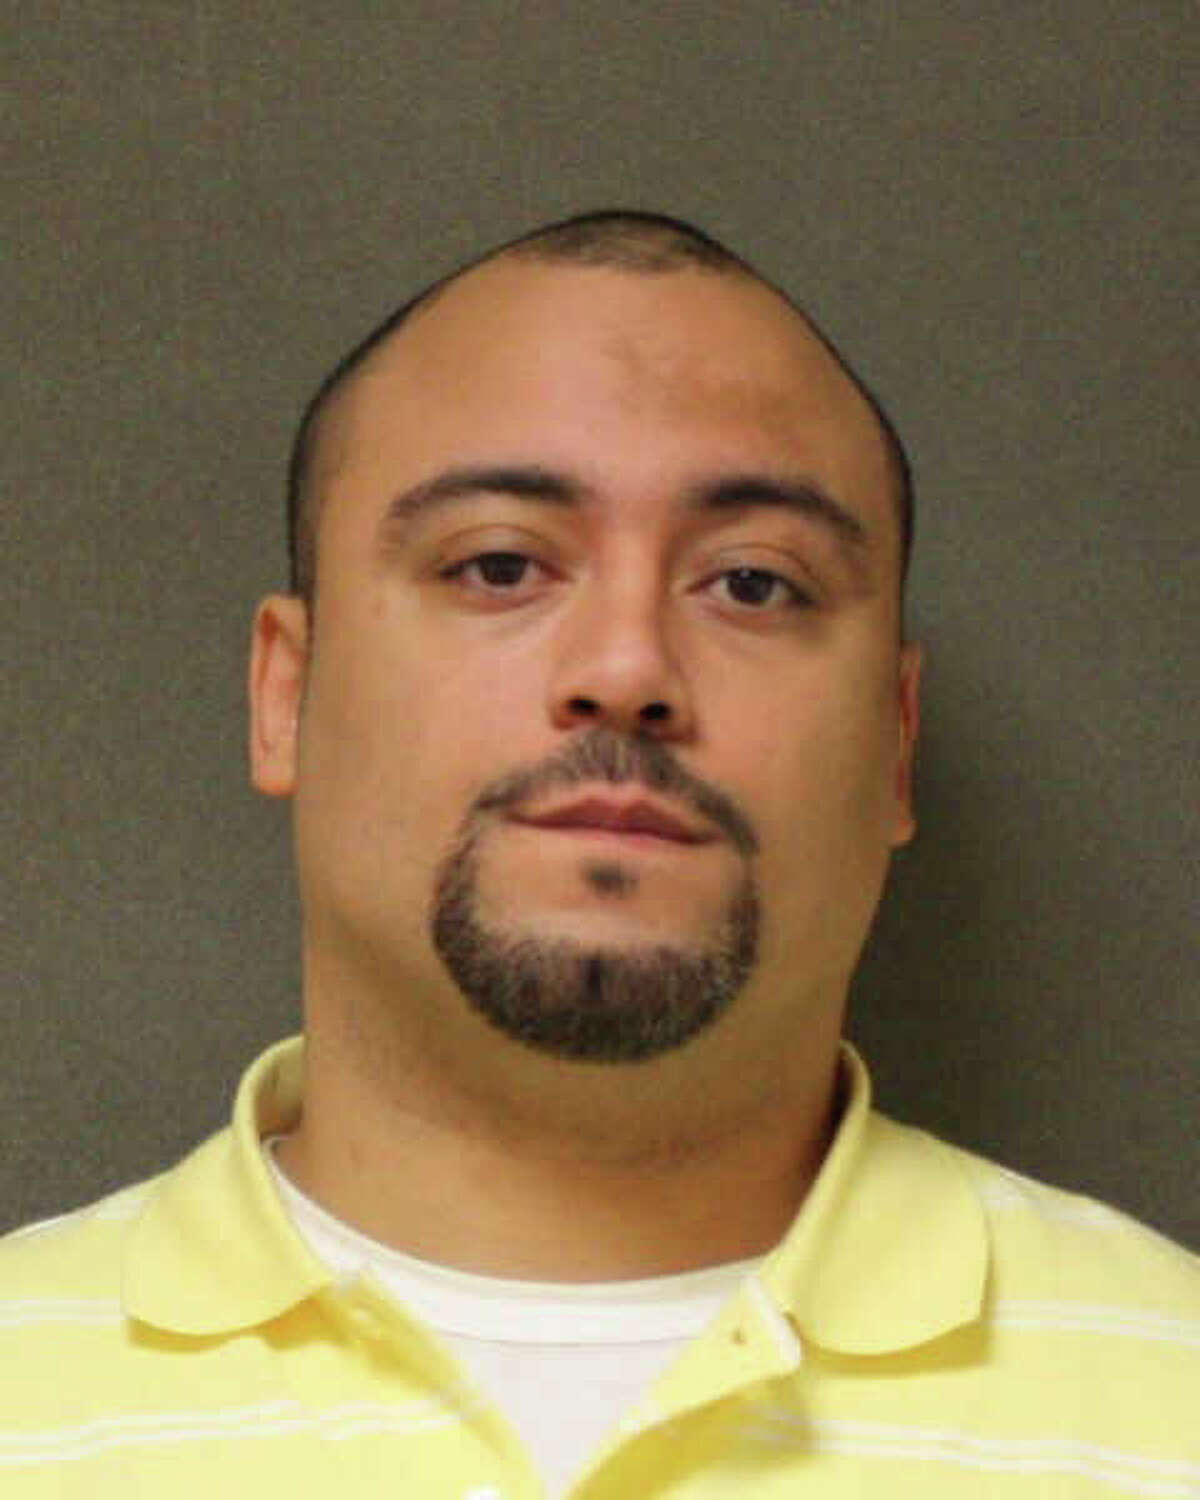 The case of Angel Luis Santiago, 35, of West Haven, charged with first-degree manslaughter in the death of Kyle Robinson, a 5-month old Ansonia boy, was continued Wednesday, Oct. 17, 2012 in state Superior Court in Milford, Conn.